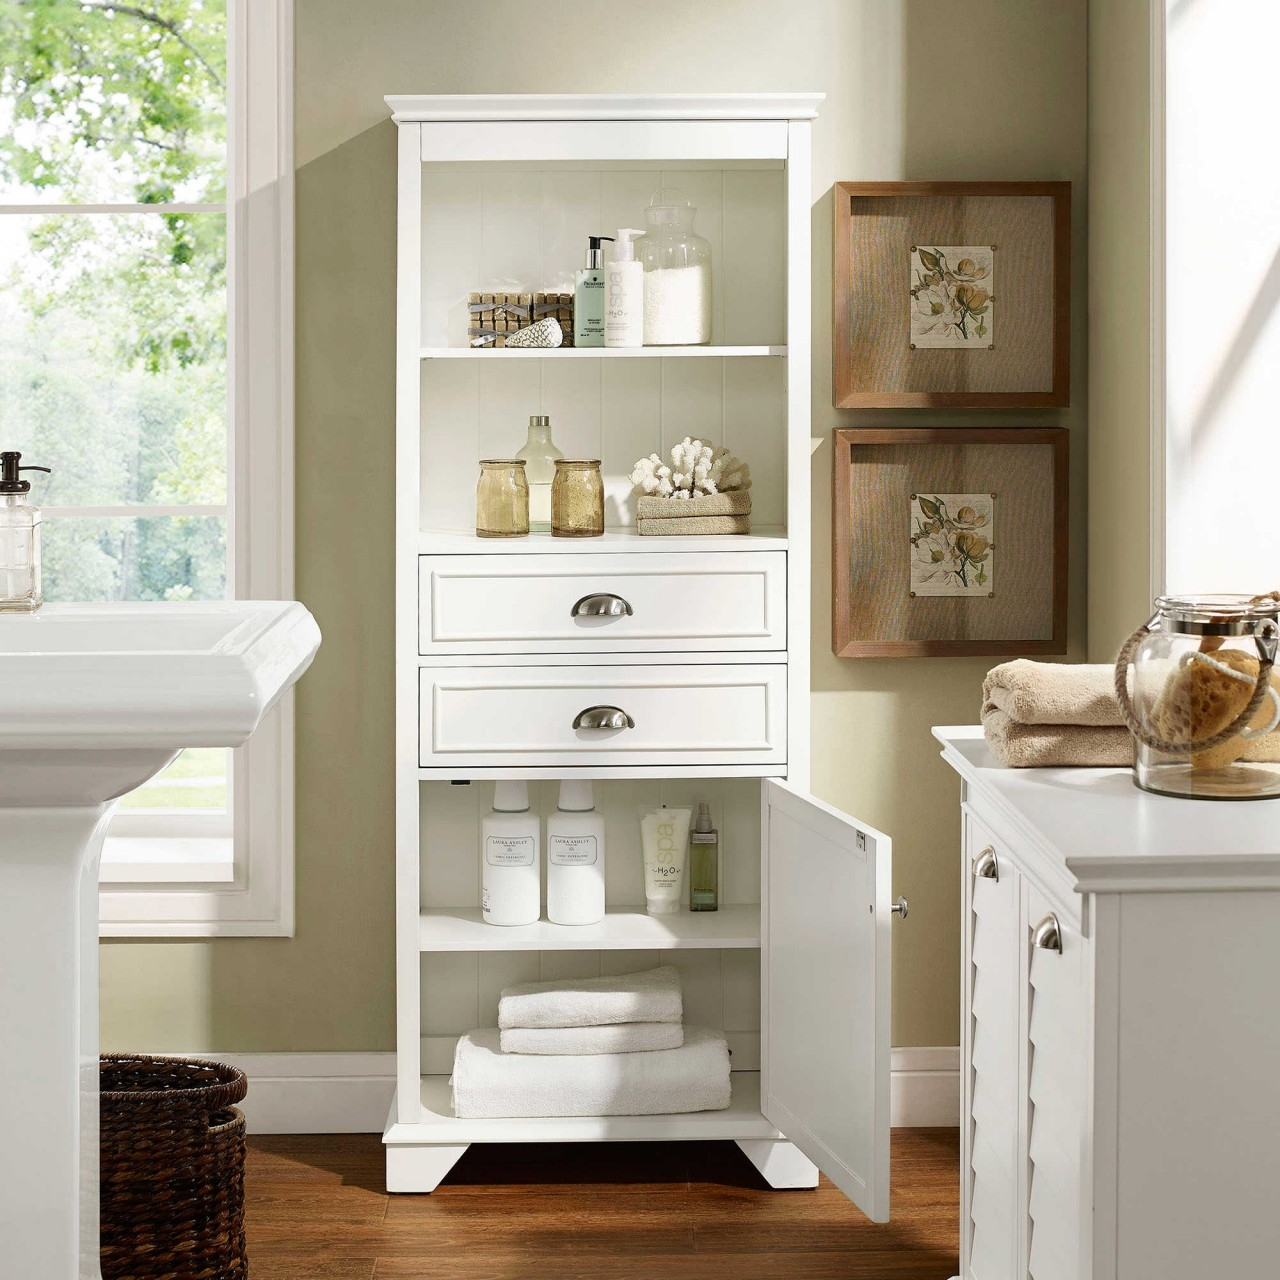 Permalink to Large Bathroom Storage Cabinets